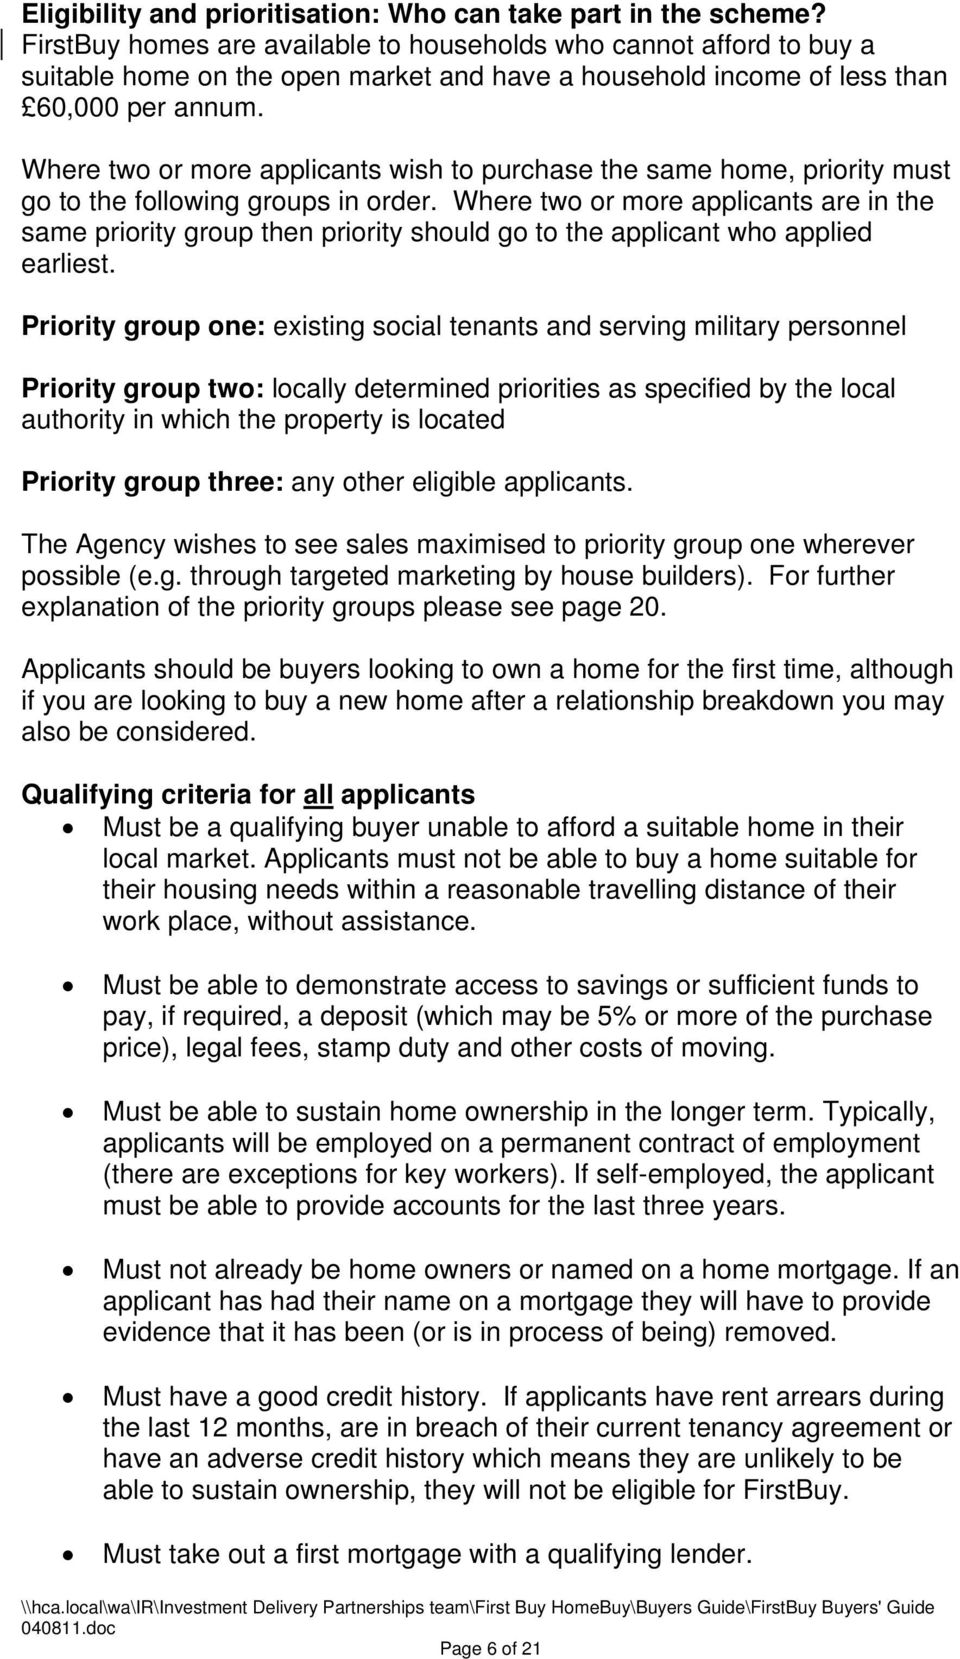 Where two or more applicants wish to purchase the same home, priority must go to the following groups in order.